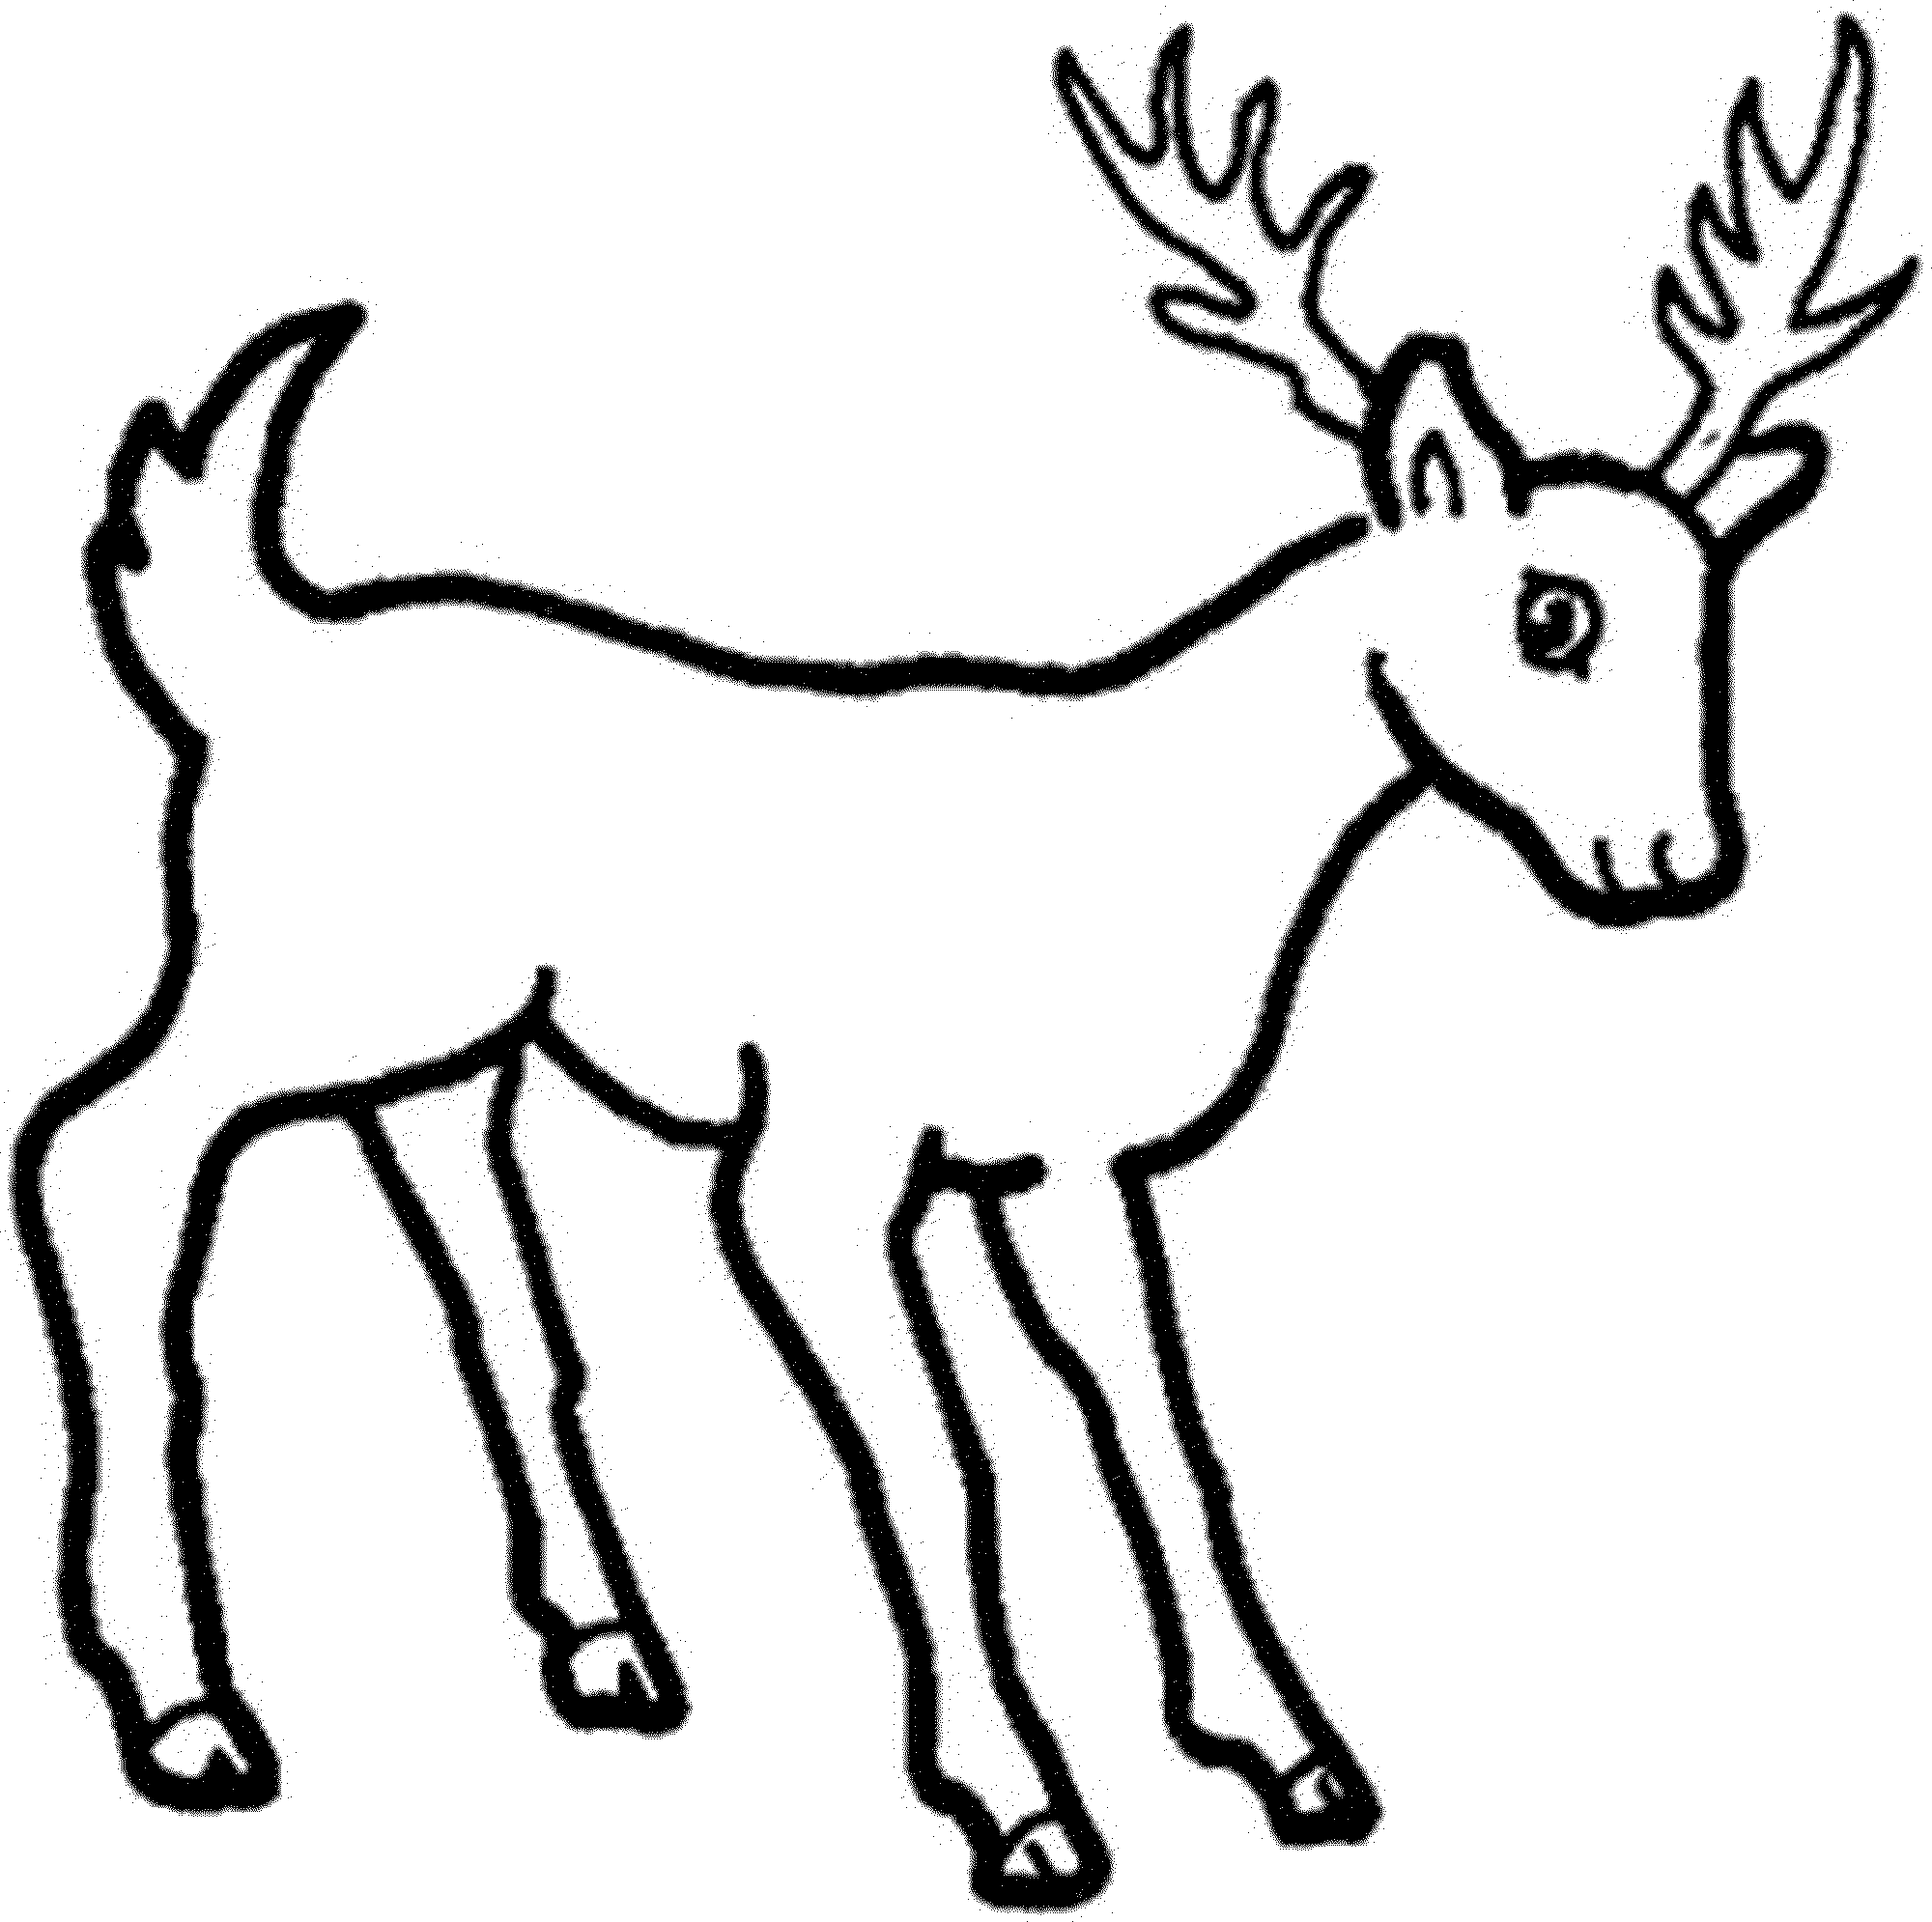 animals drawings to color deer animals page 2 printable coloring pages to color animals drawings